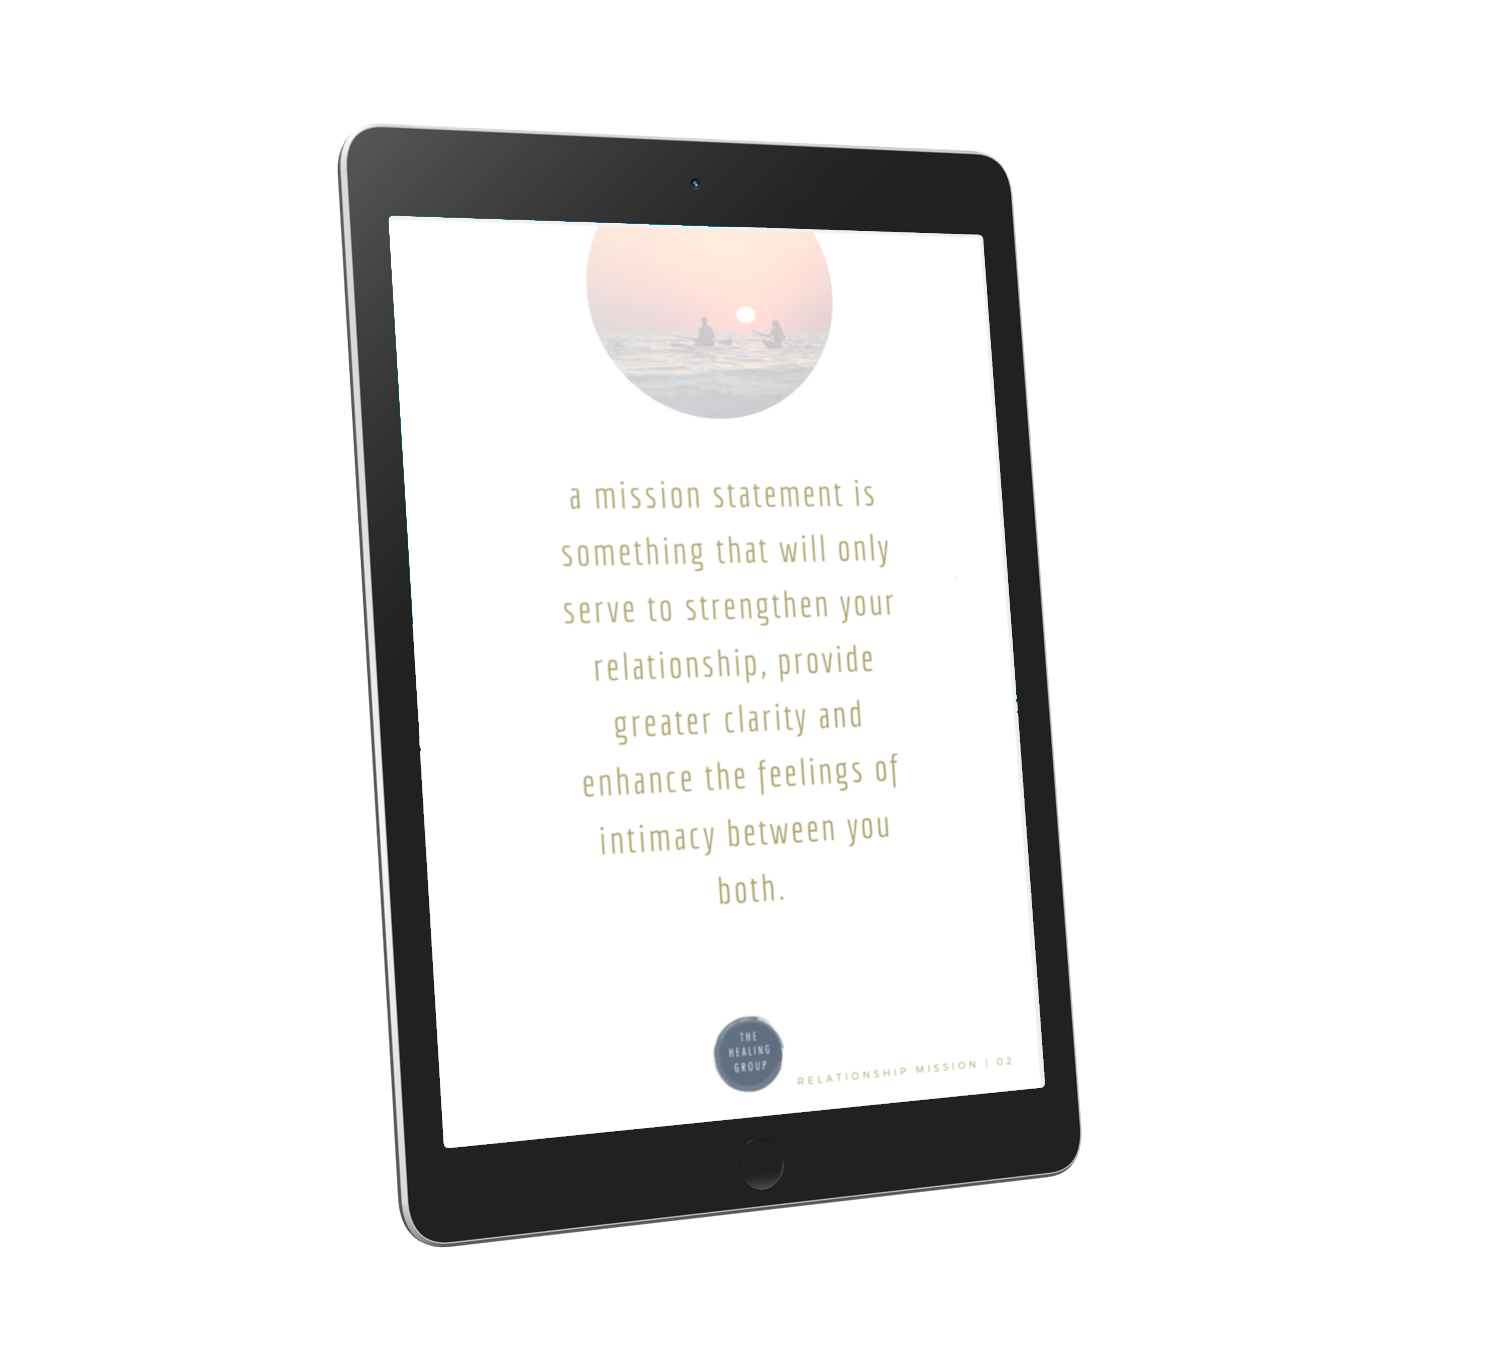 Your Relationship Mission Statement E-Book